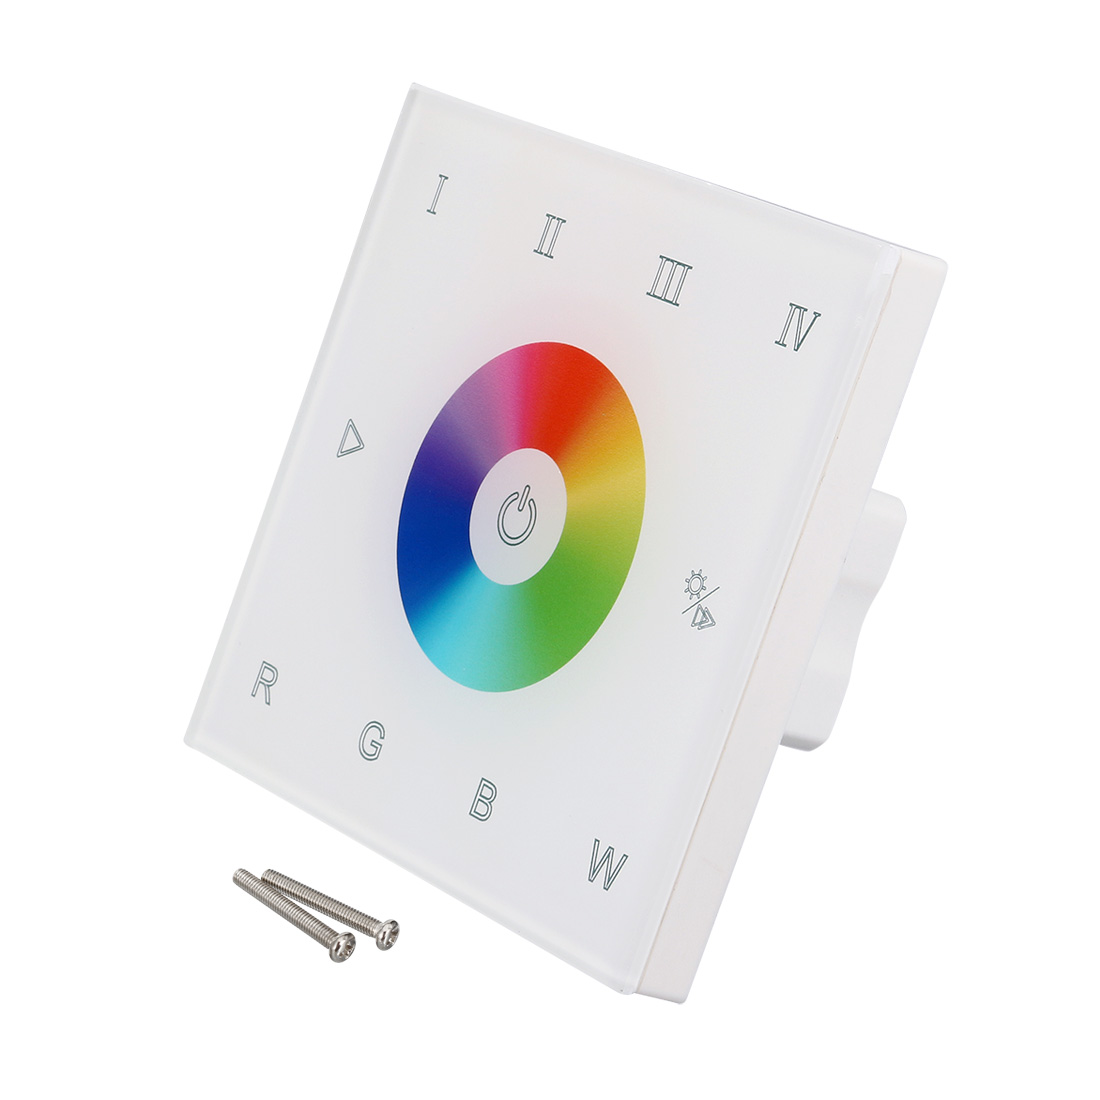 Wall Mount DC12-24V Touch Panel Full Color Controller for RGBW DMX LED Strip Lighting 16A 192W 384W 4 Zones